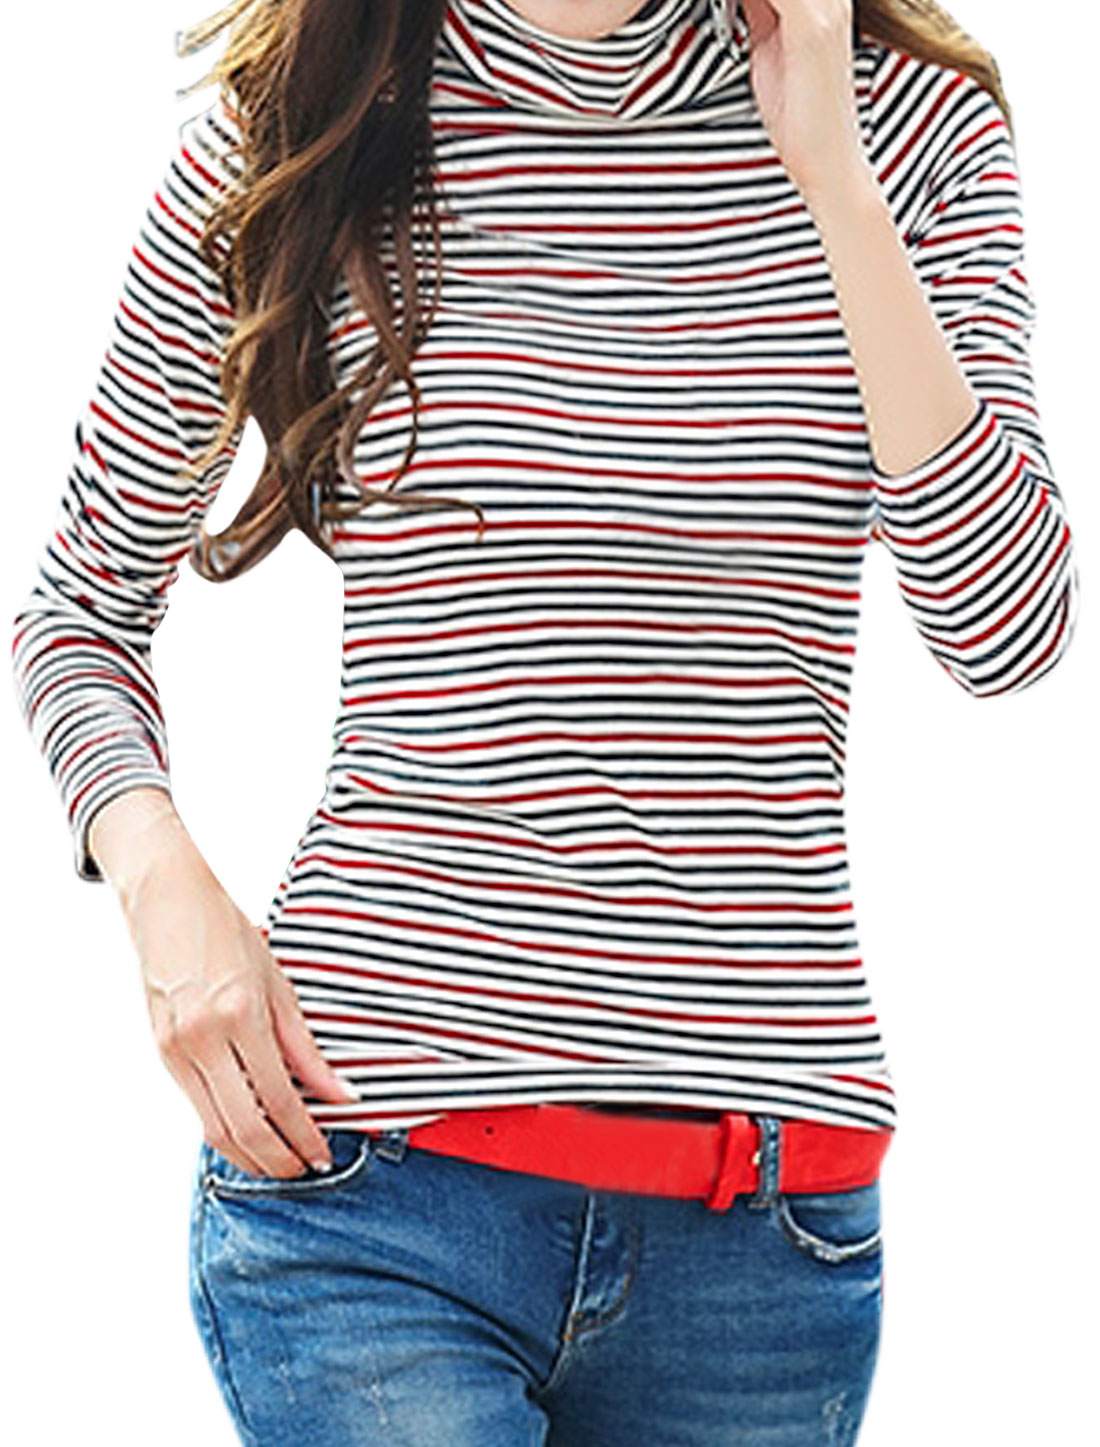 Women Turtle Neck Long Sleeves Stripes Slim Fit Top Red S